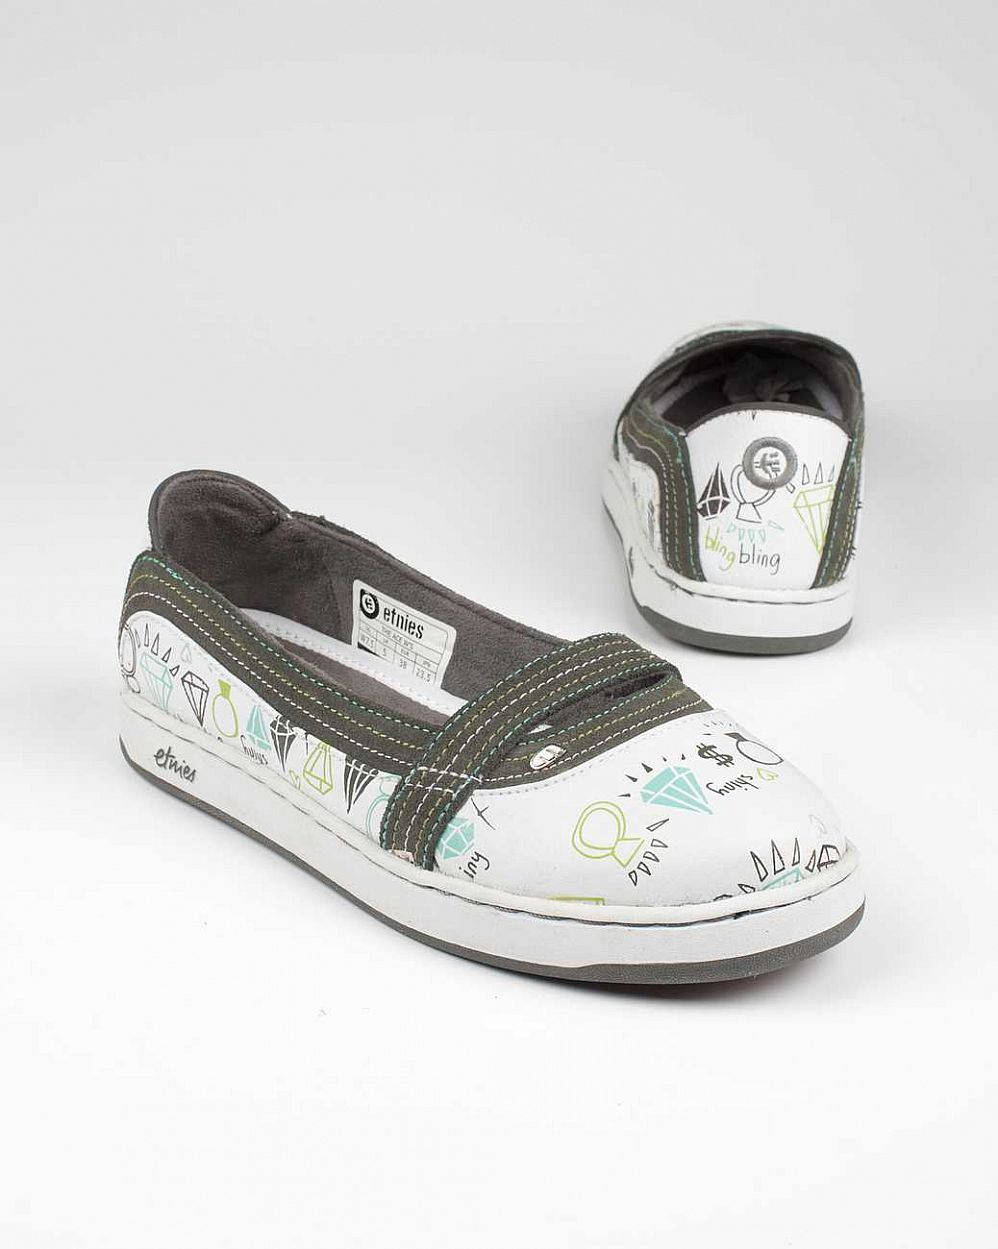 купить Кеды Etnies The Ace WS white glam в Москве